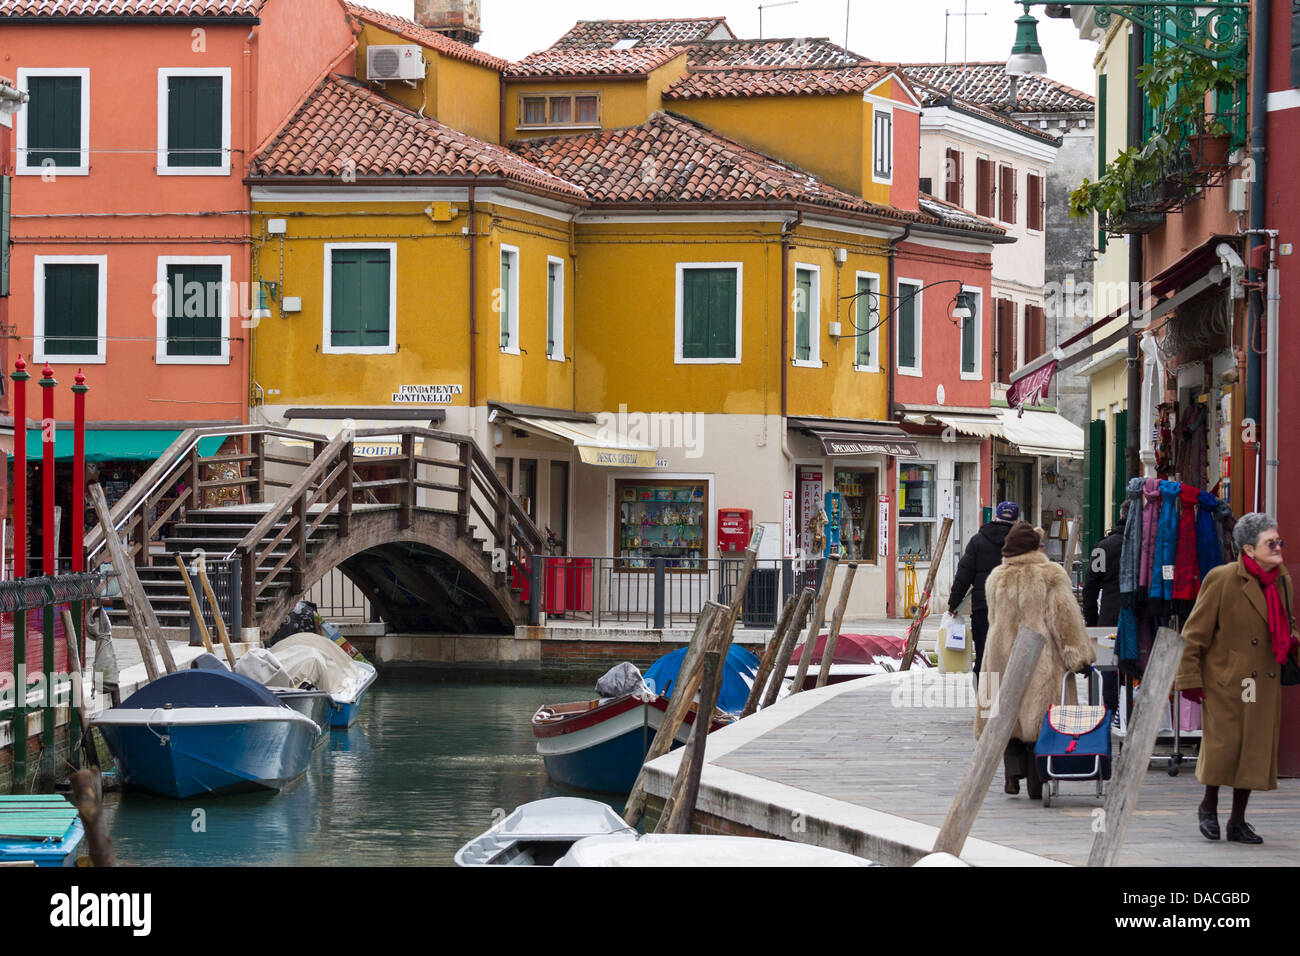 Colorful burano italy burano tourism - Colorful Buildings And Facades Burano Island Venice Italy